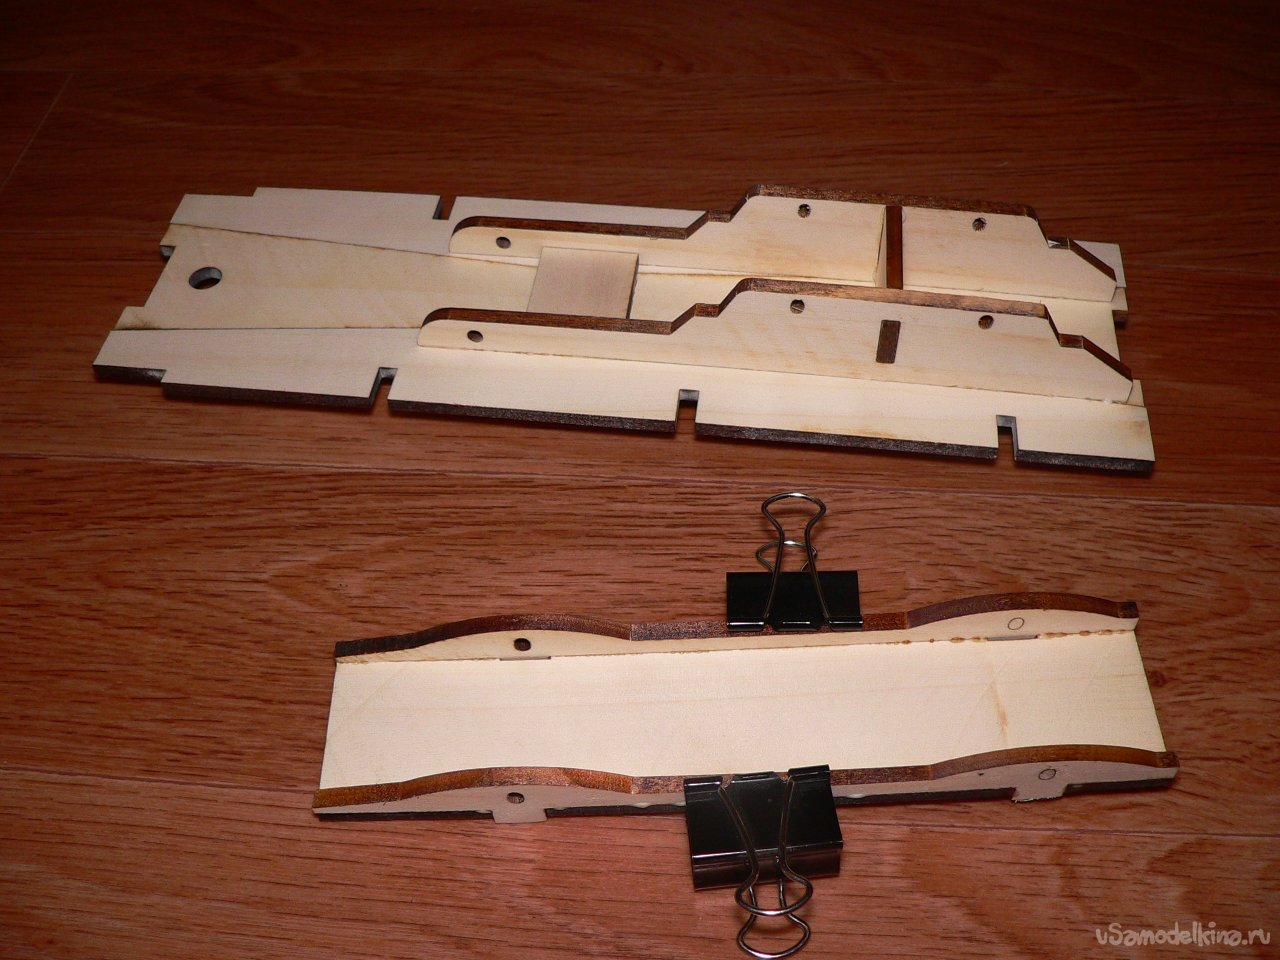 Toy timber car made of wood